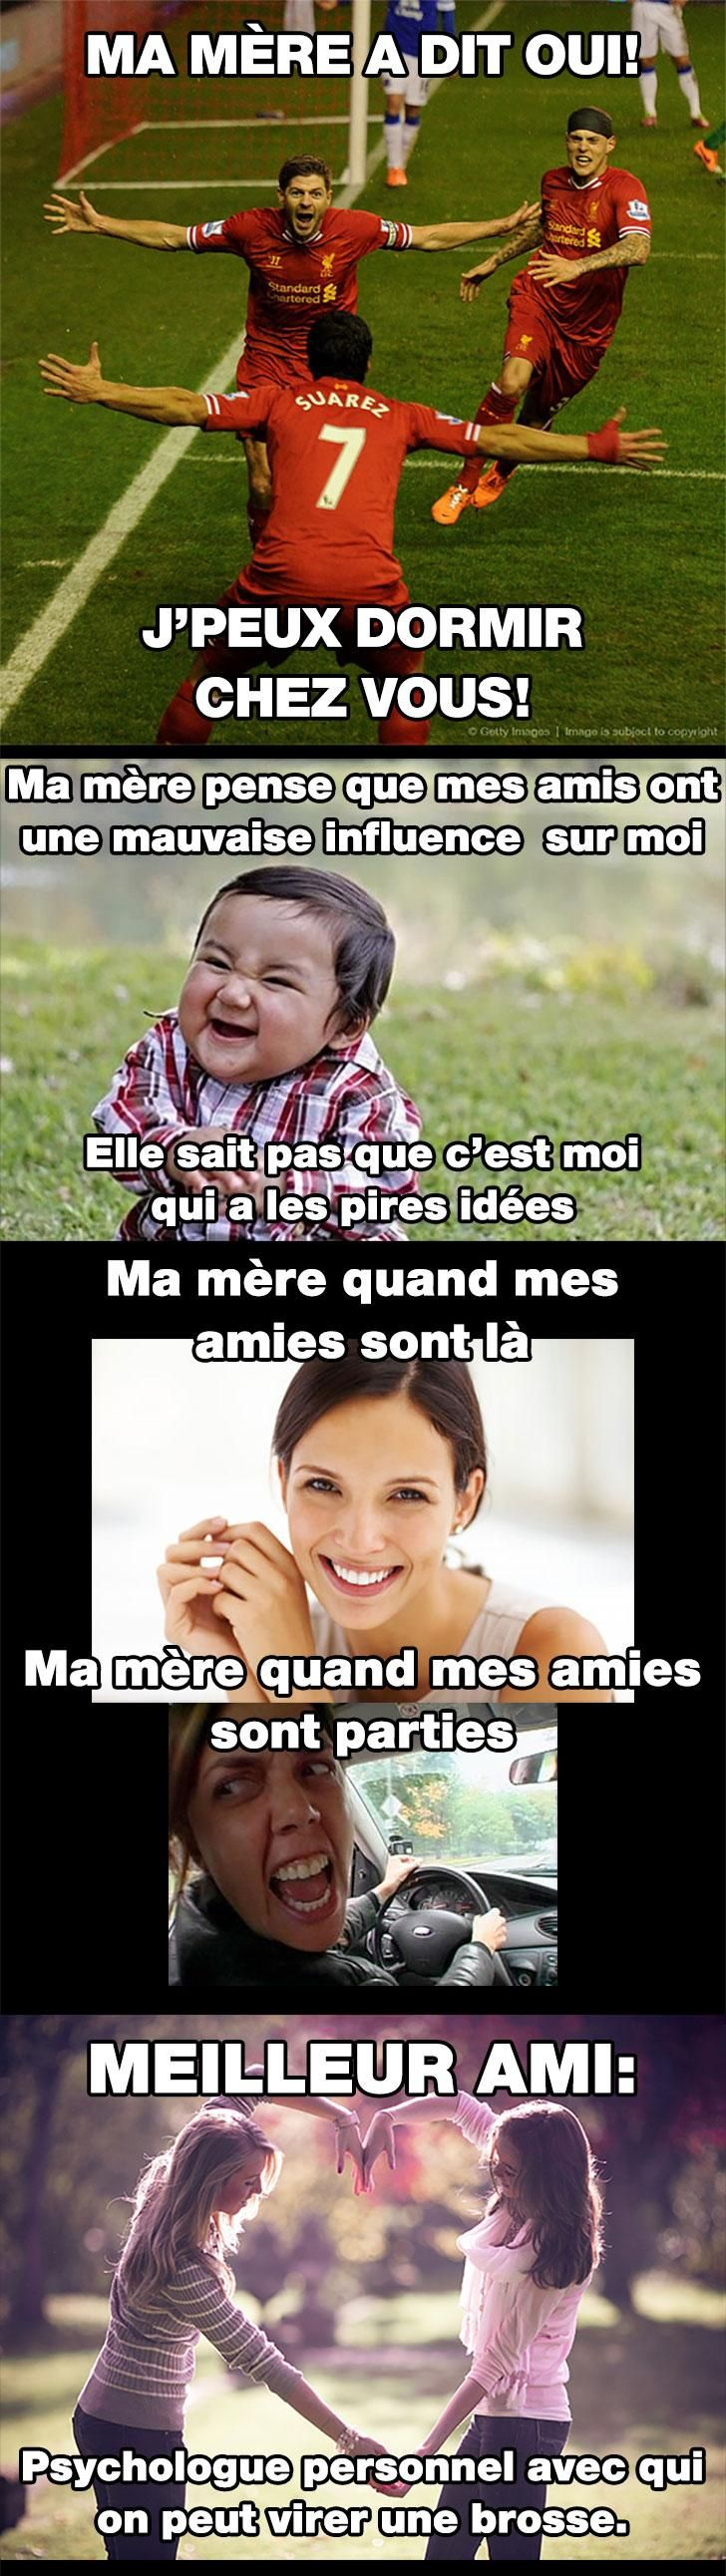 ma-mere-a-dit-oui-compilation-1